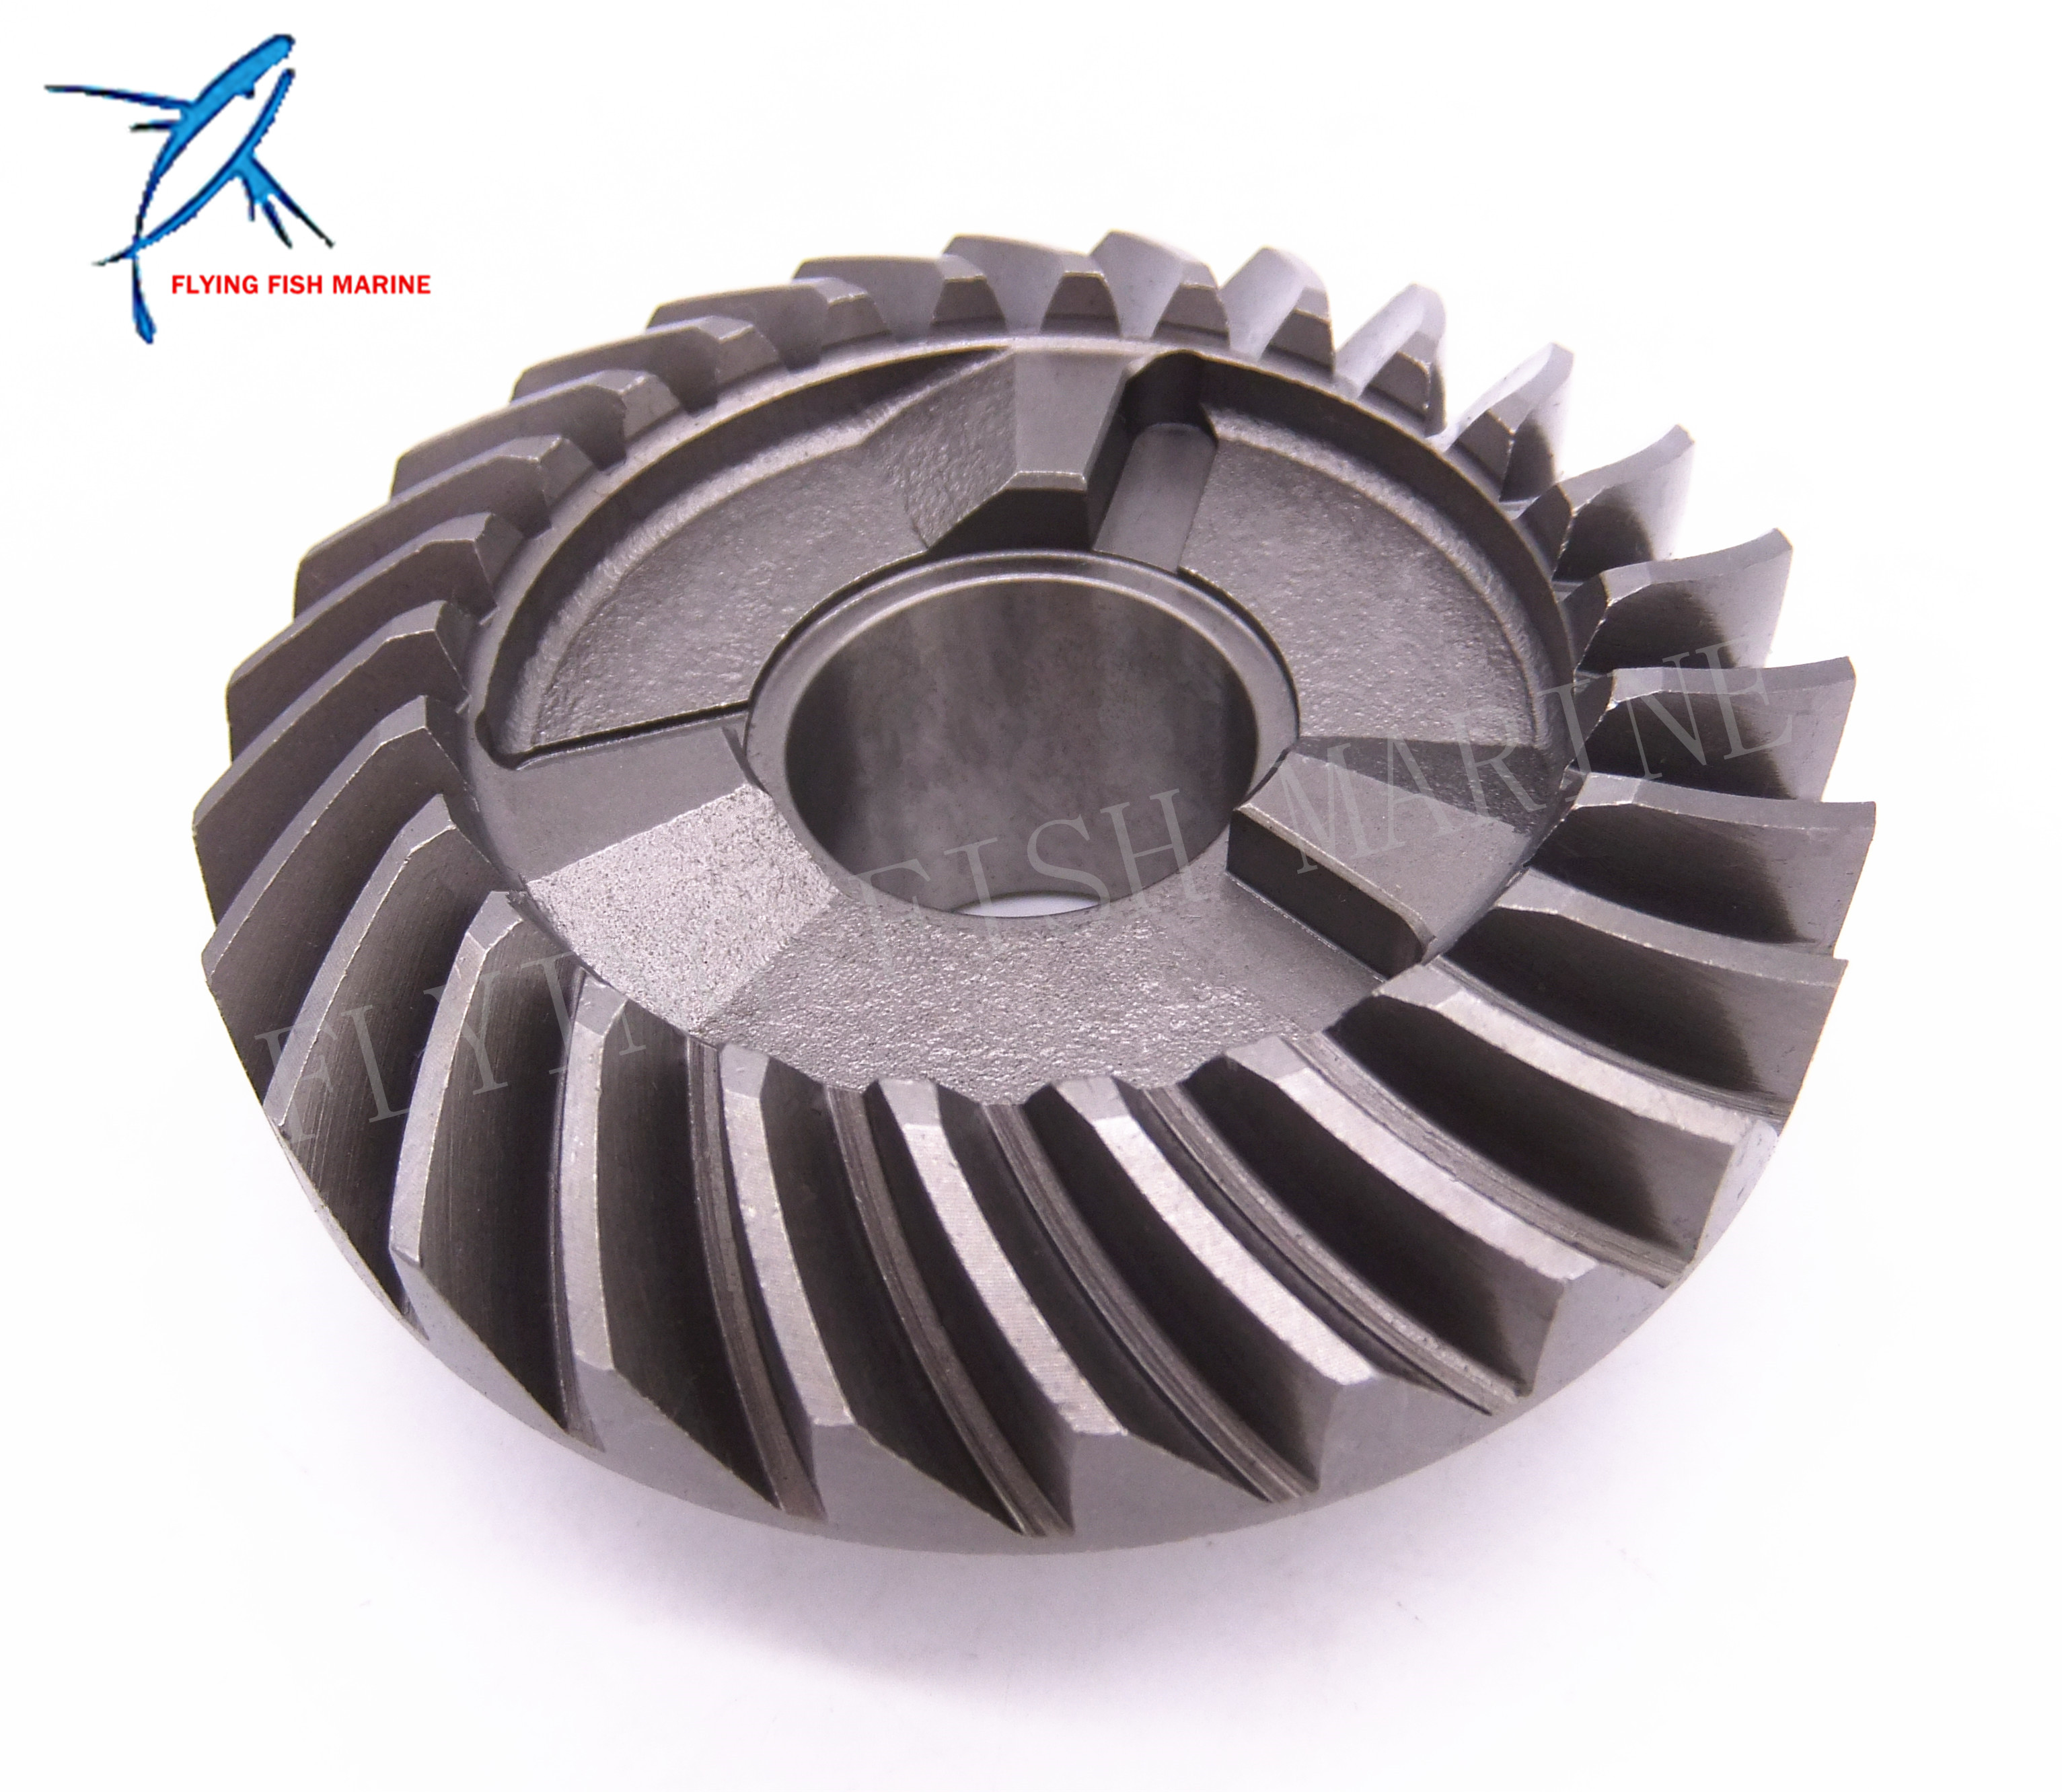 Atv,rv,boat & Other Vehicle free Shipping Quell Summer Thirst Delicious Boat Motor Reverse Gear T85-04000005 For Parsun Hdx Outboard Engine 2-stroke T75 T85 T90